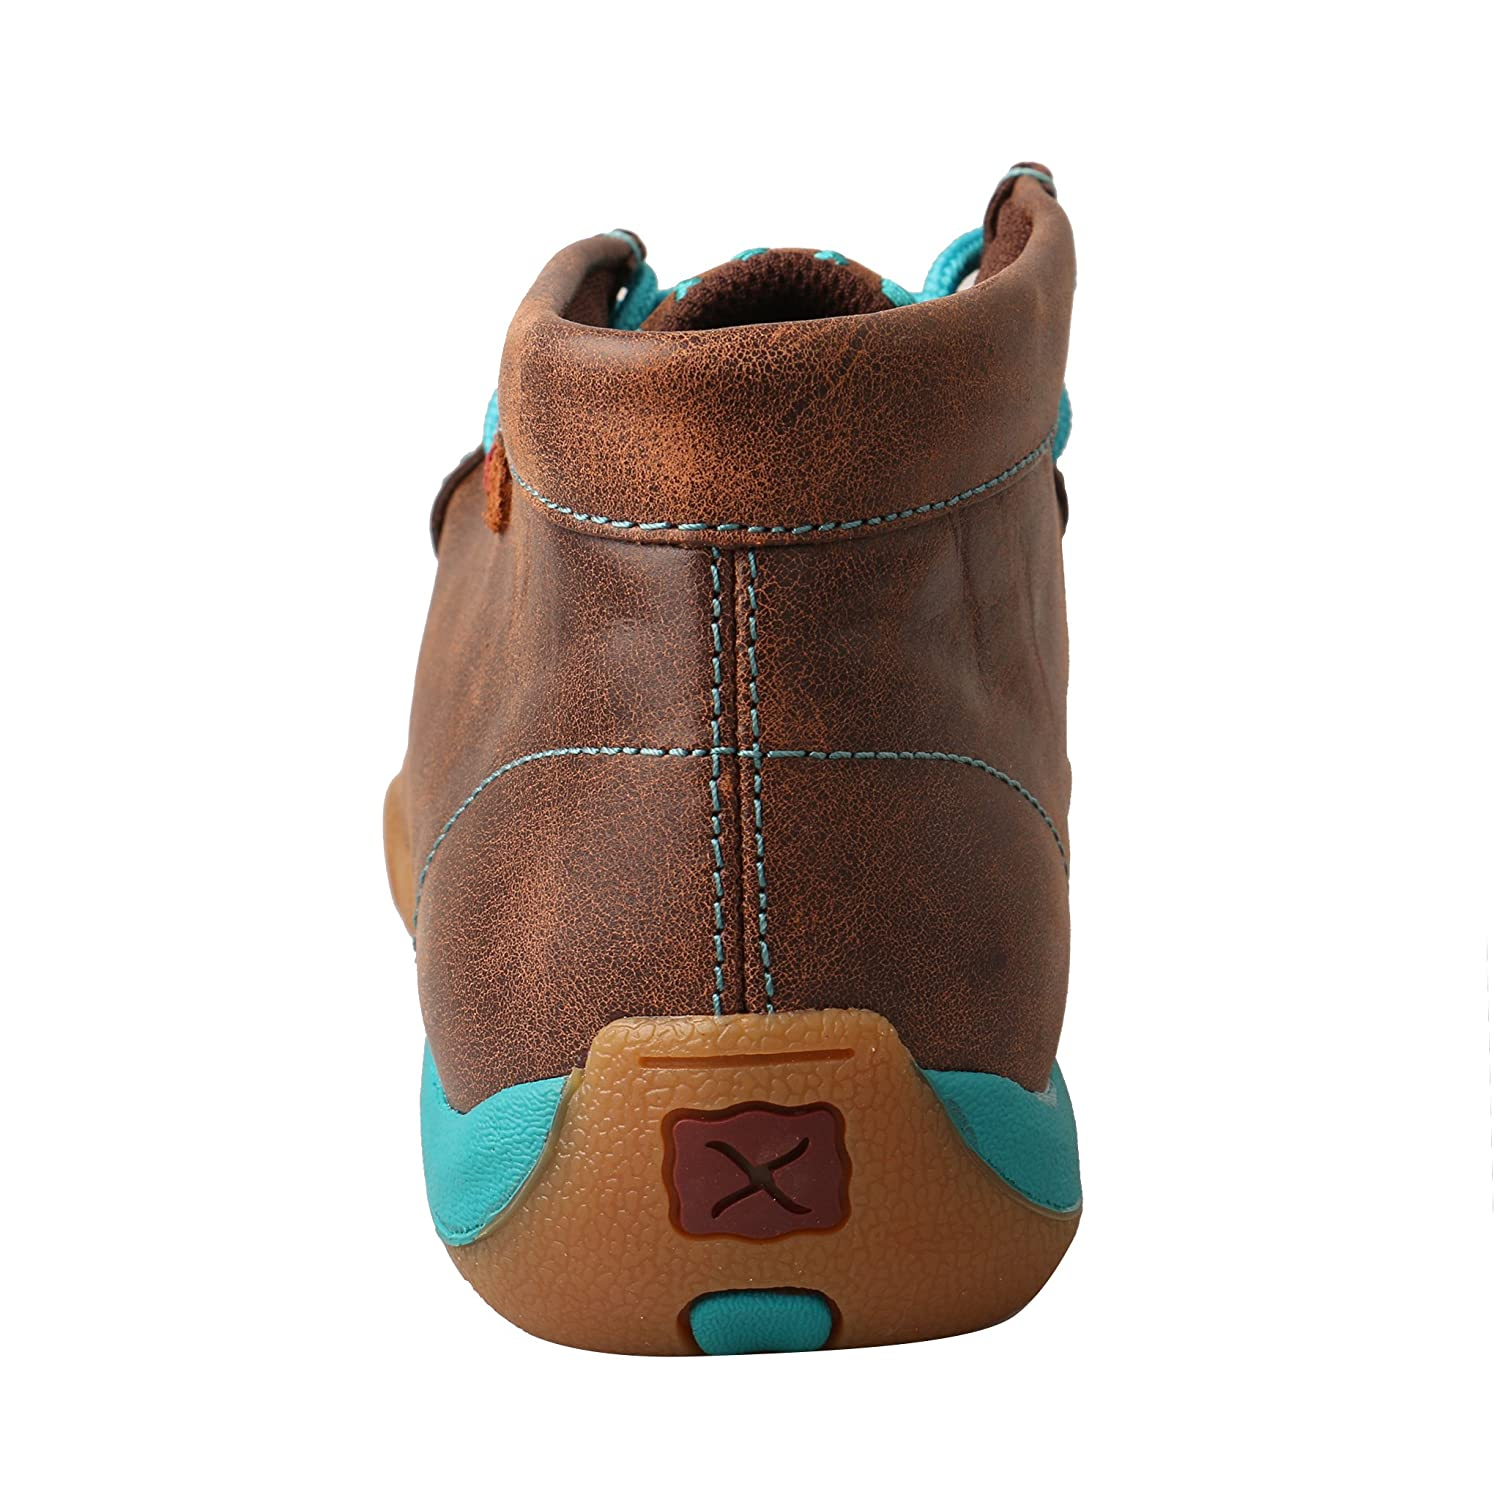 Twisted X Women's Leather Lace-up Rubber Sole Driving Moccasins - Brown/Turquoise B074BPJY6D 8.5 B(M) US|Brown/Turquoise